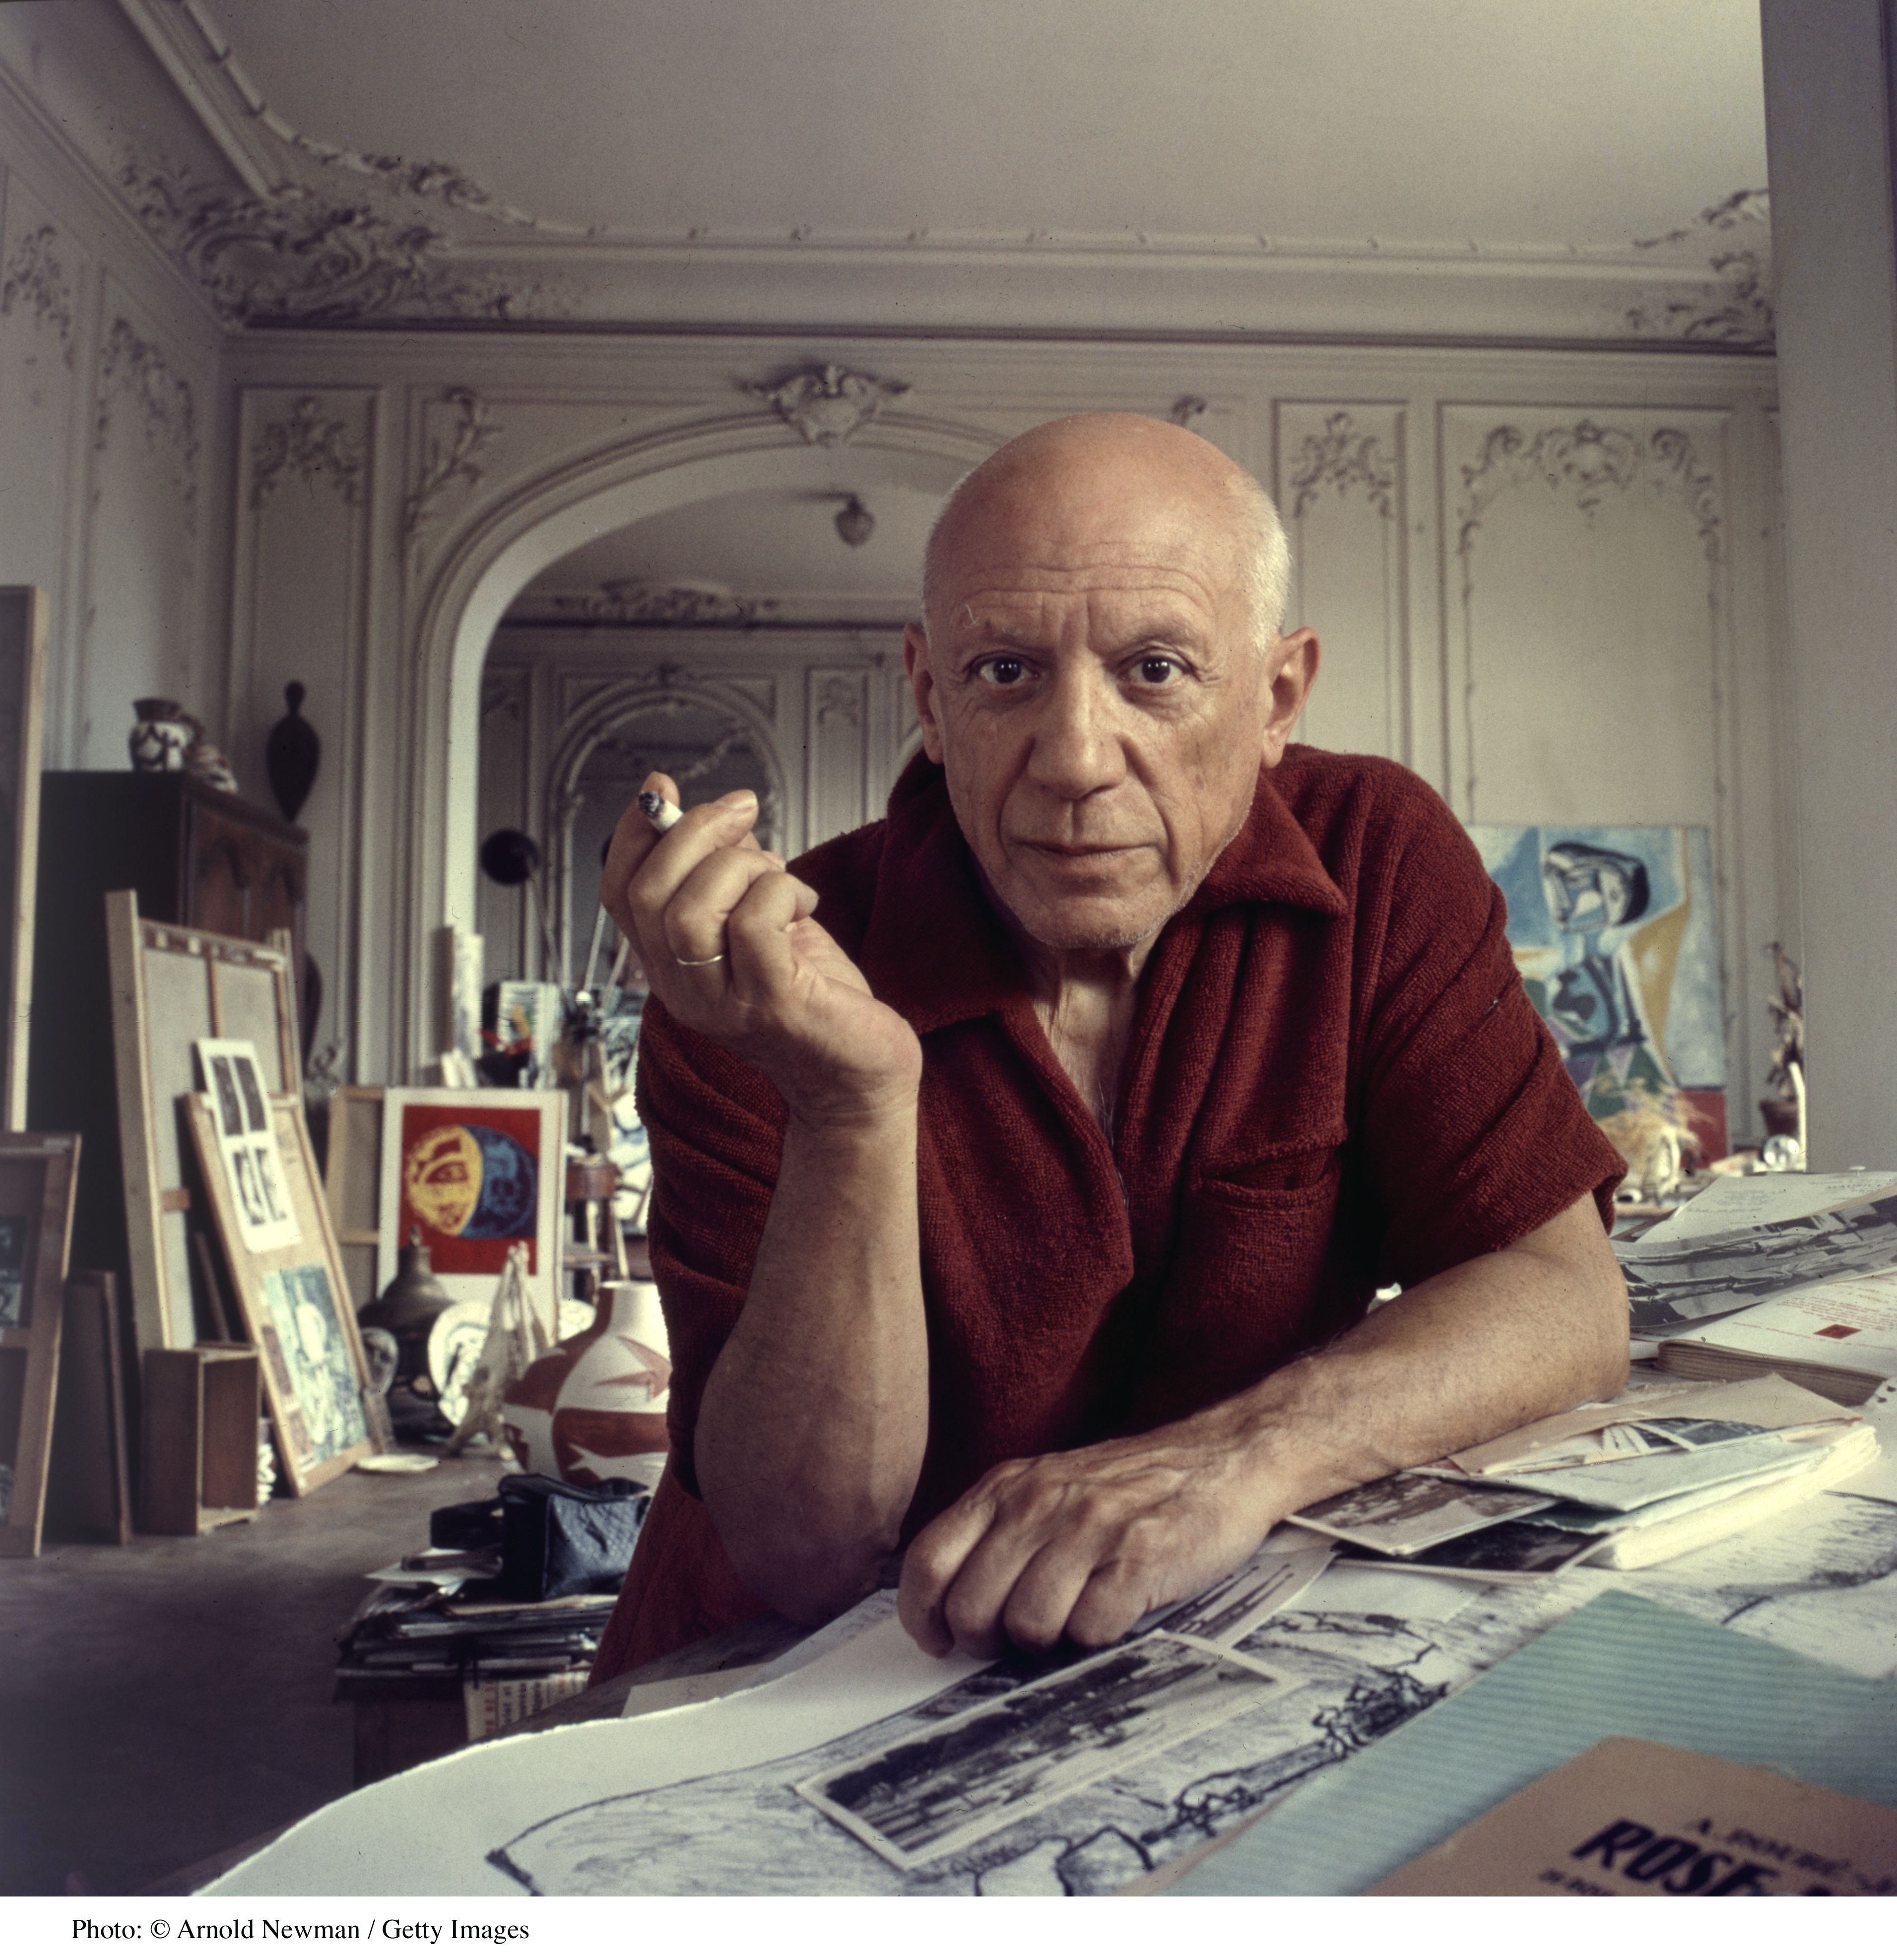 Portrait of Spanish artist Pablo Picasso (1881 - 1973) as he smokes a cigarette, Cannes, France, September 11, 1956. (Photo by Arnold Newman/Getty Images)